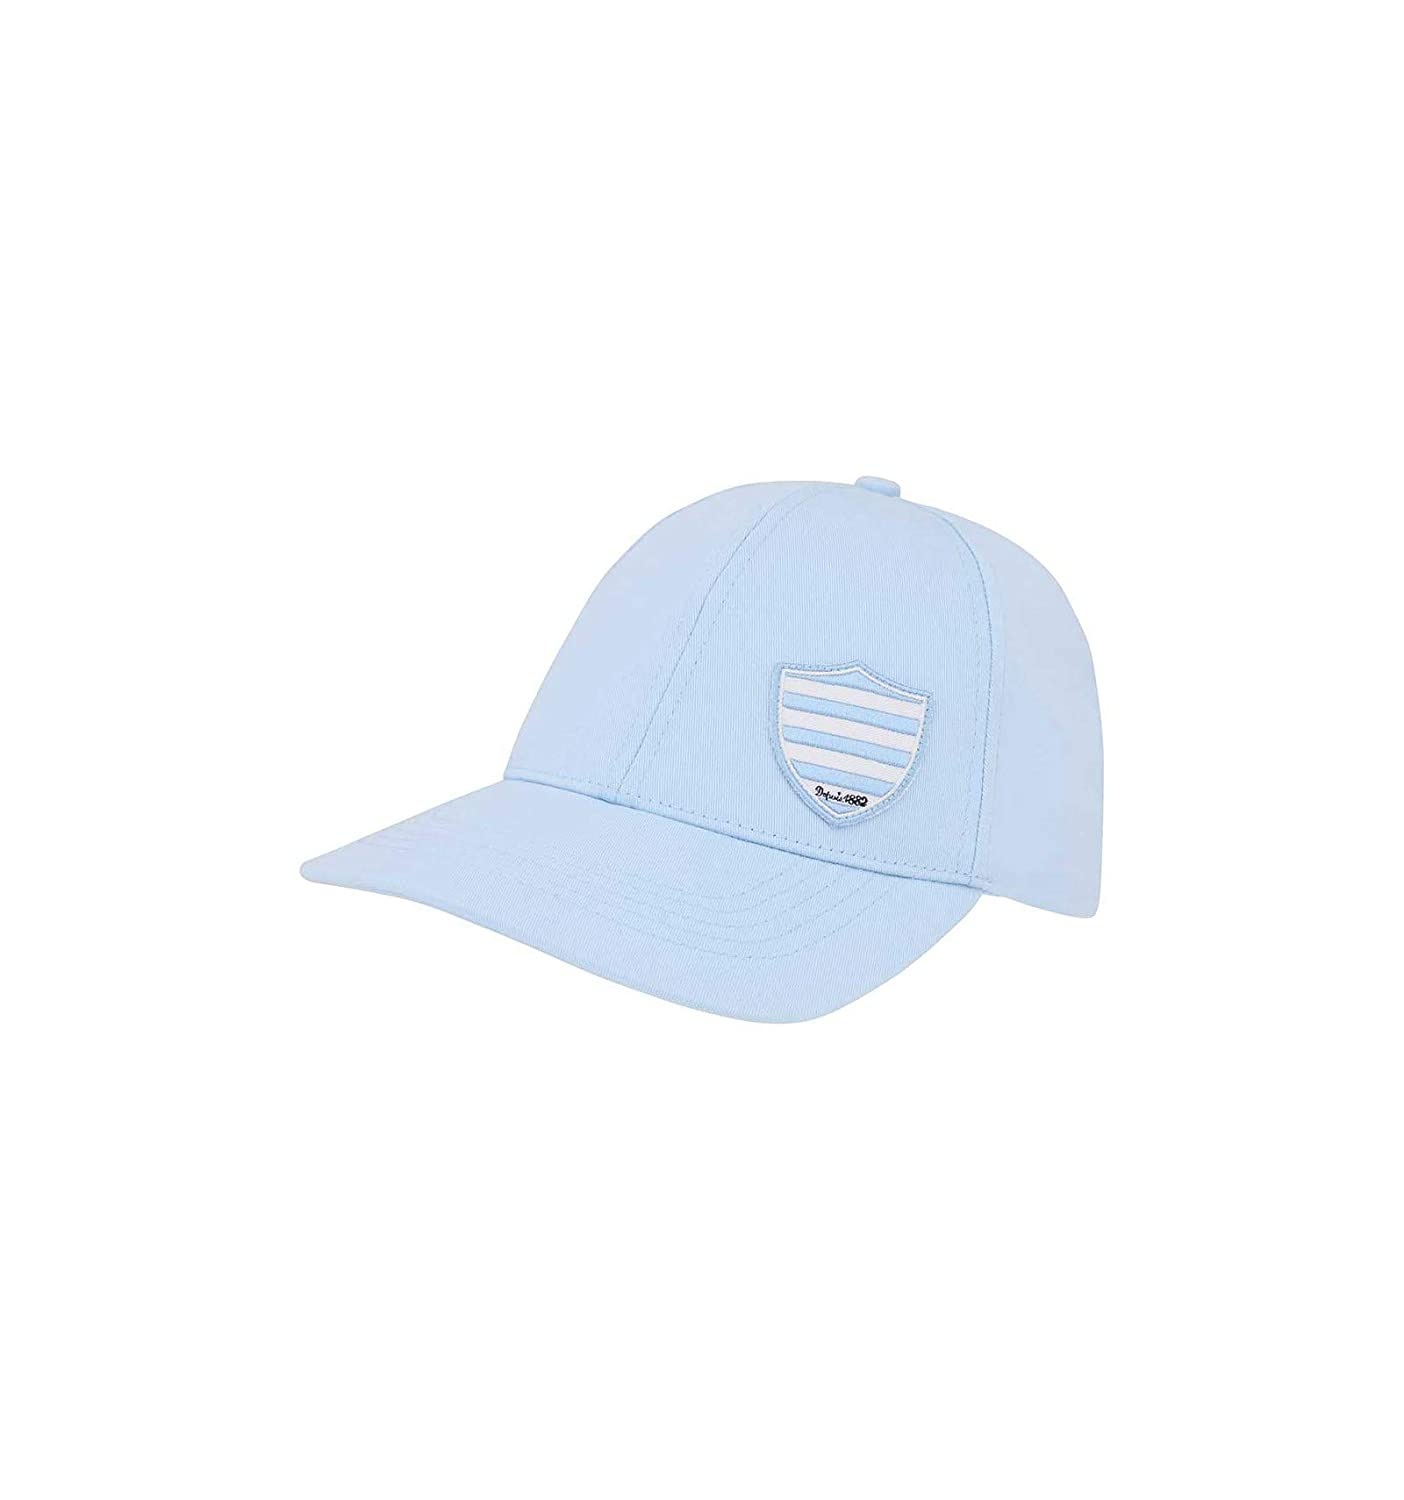 Le Coq Sportif Racing Cap Blue 92 Gorra, Hombre: Amazon.es ...